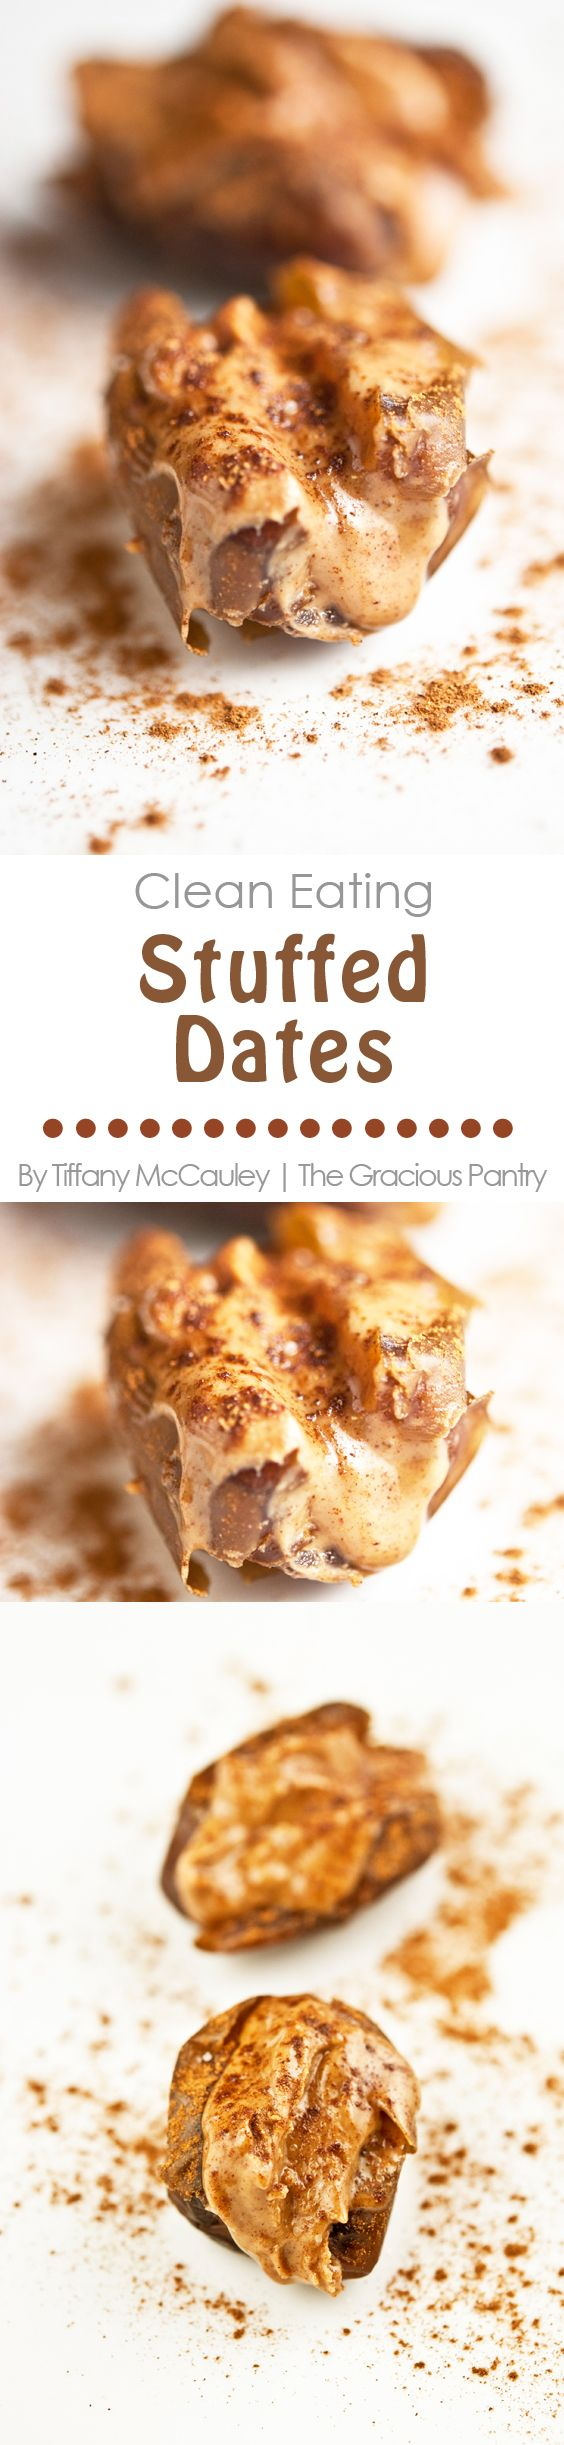 Clean Eating Recipes | Healthy Snacks | Stuffed Dates | Healthy Recipes | Snack Recipes ~ http://www.thegraciouspantry.com